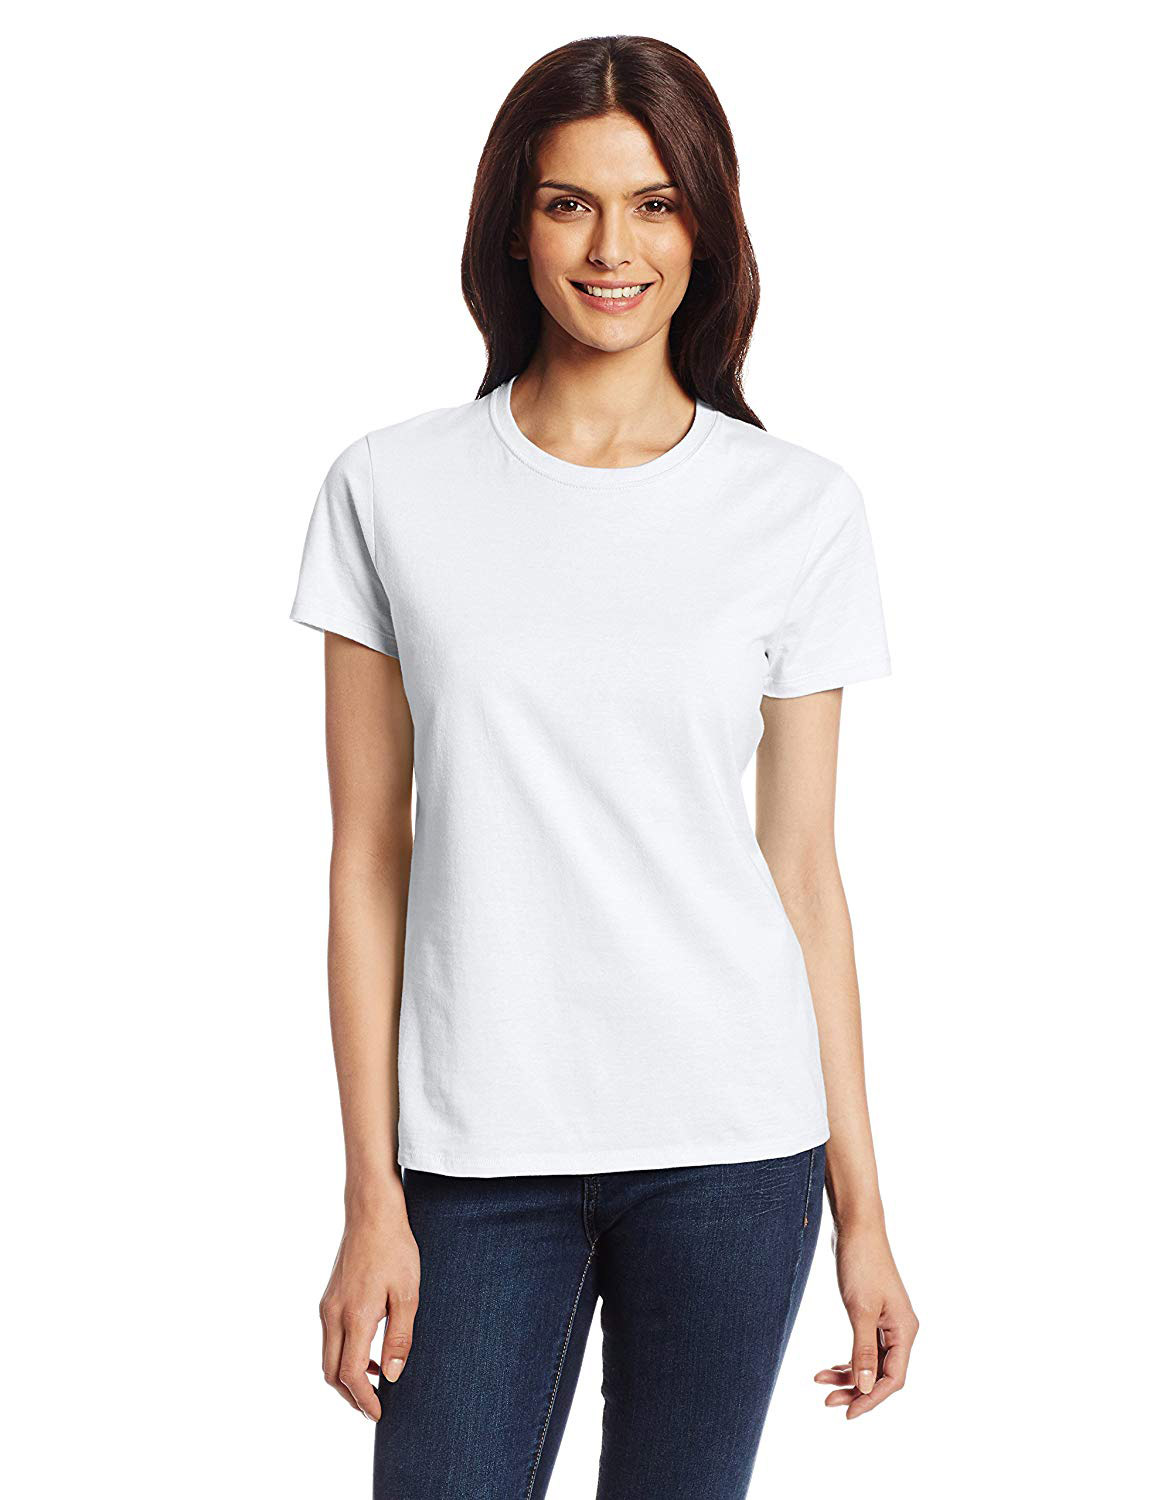 Best Amazon White T-Shirts